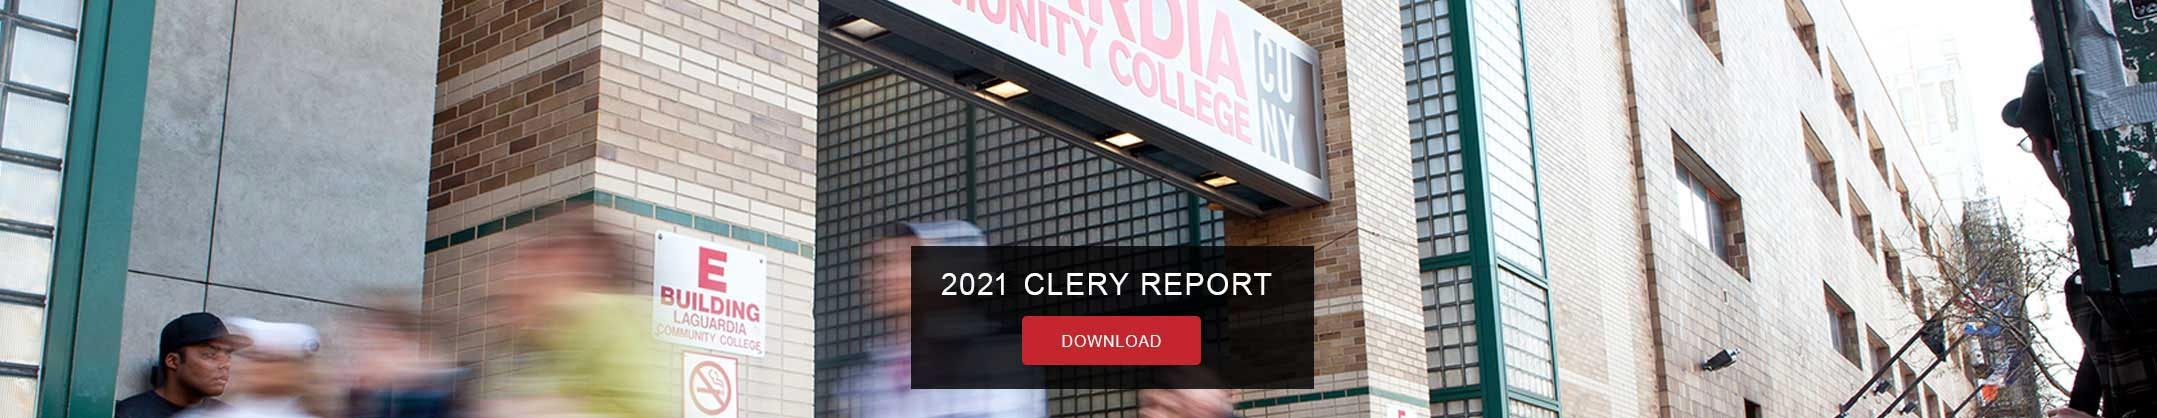 Clery Report LaGuardia Community College